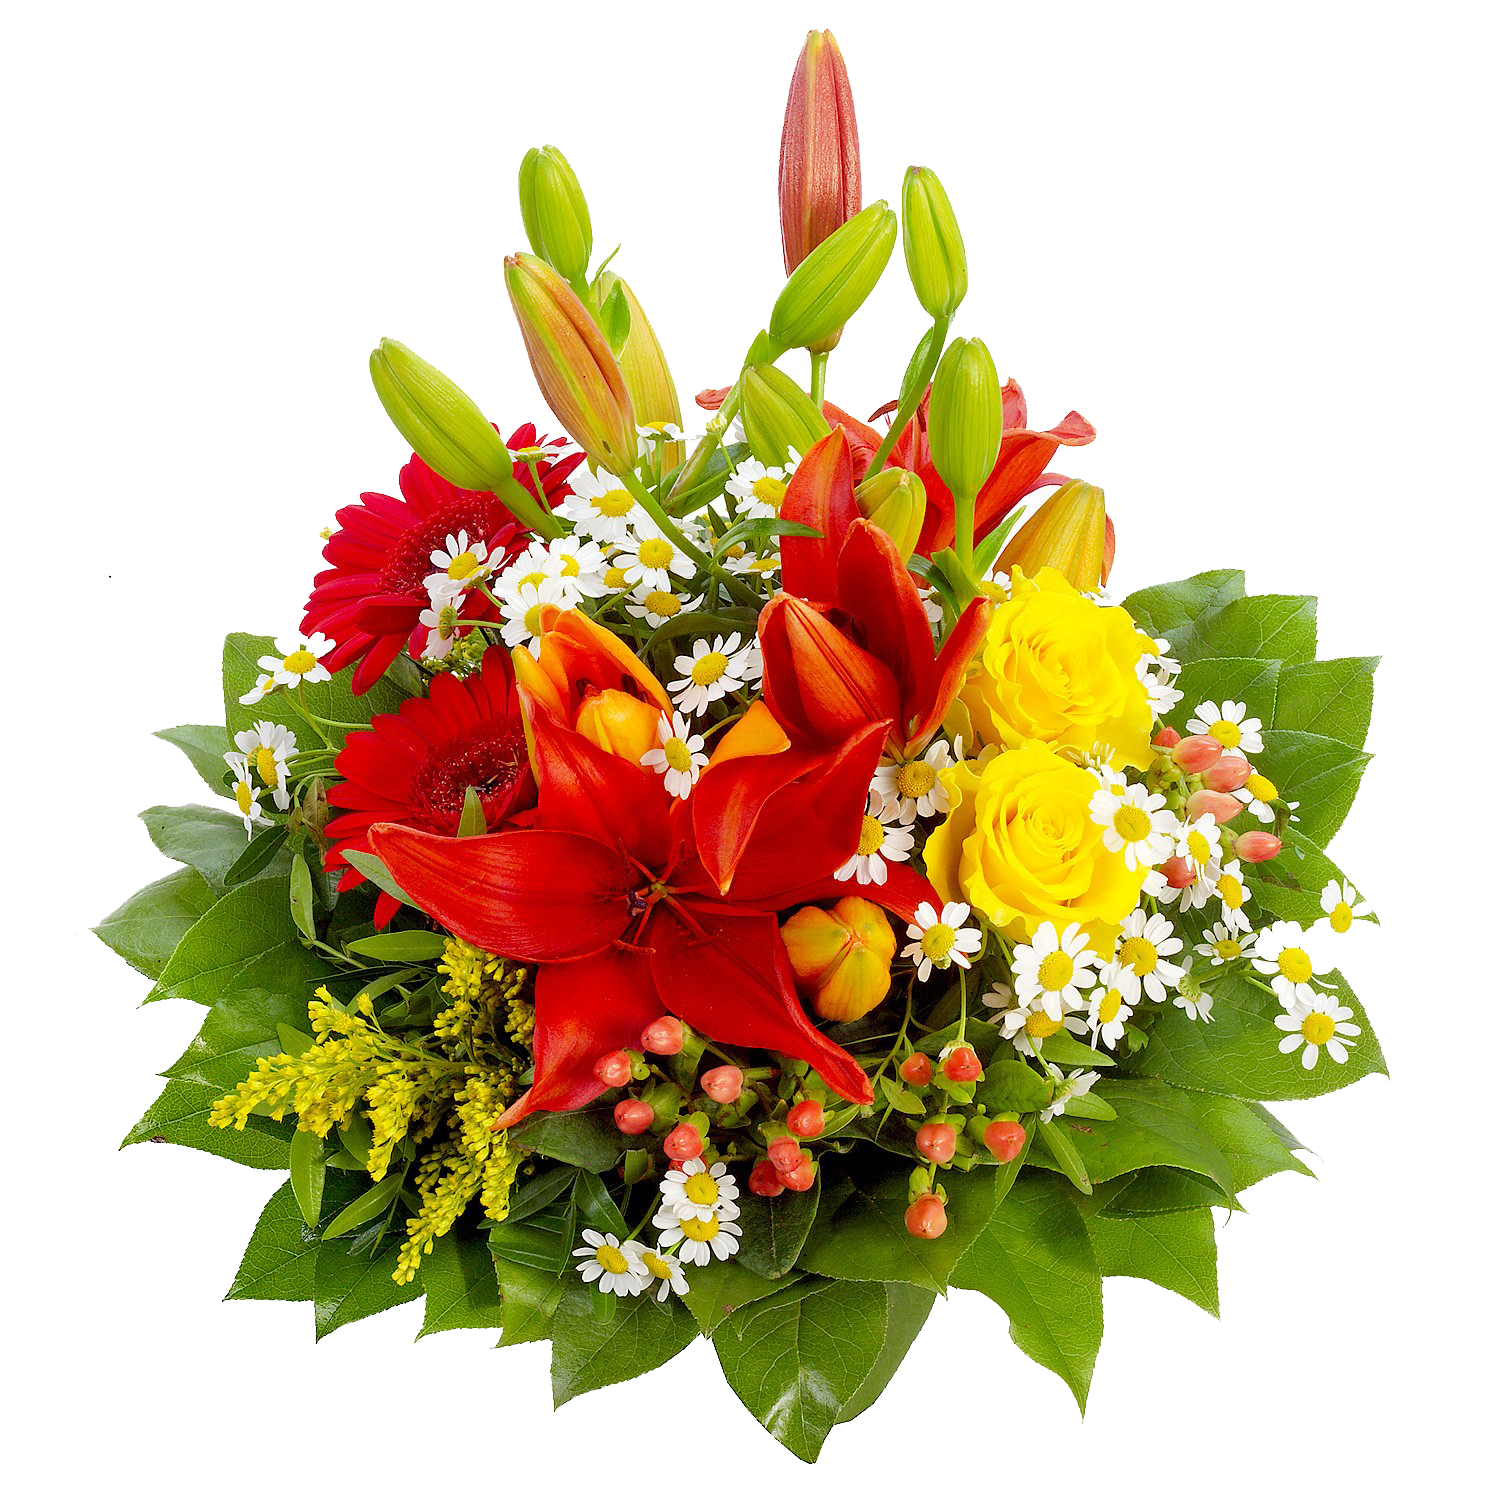 Flowers Free Transparent Png 18198